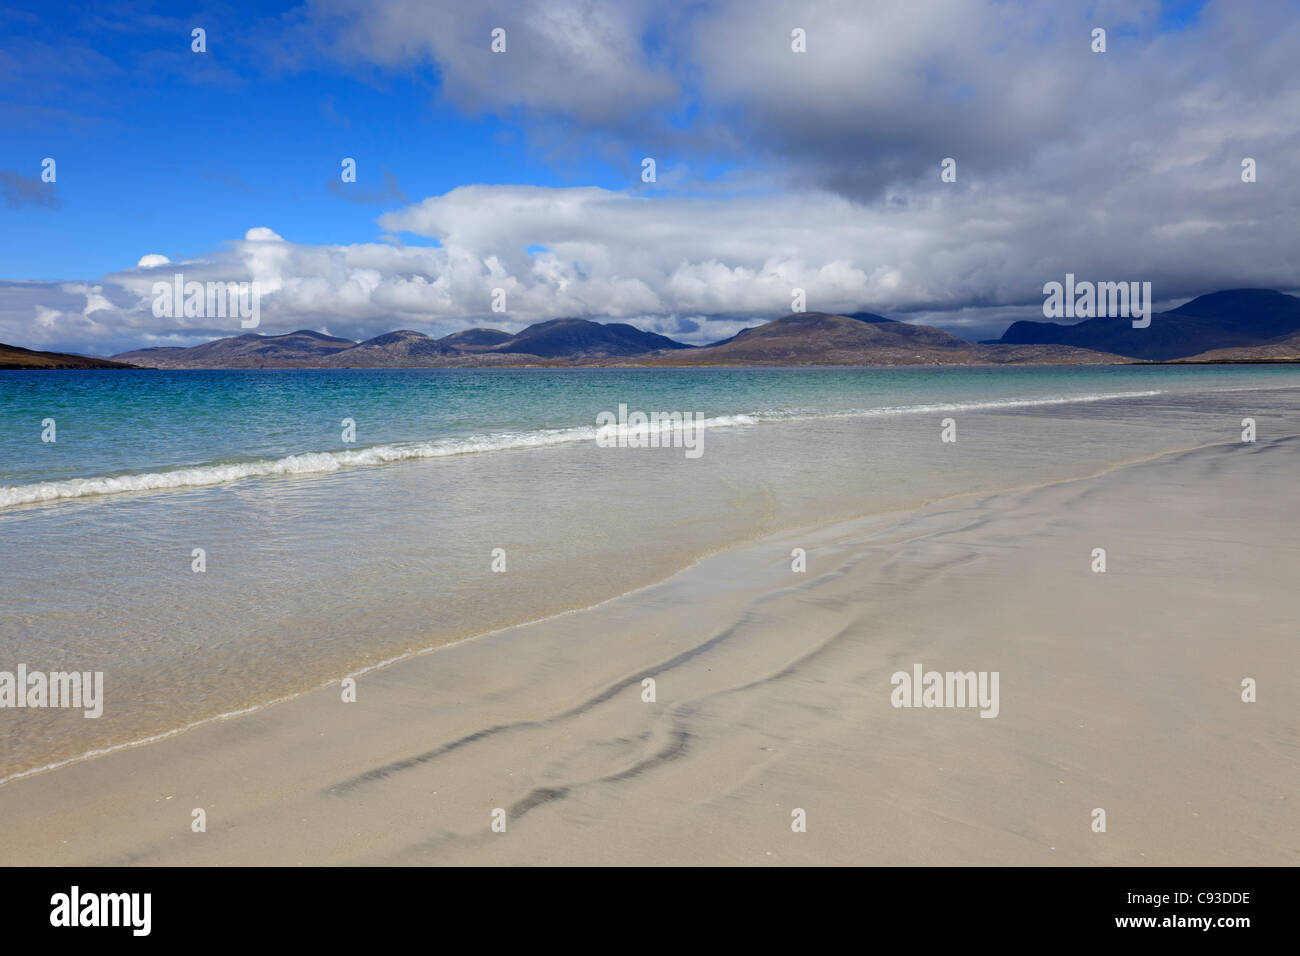 Luskentyre Isle of Harris, Outer Hebrides, Scotland - Stock Image